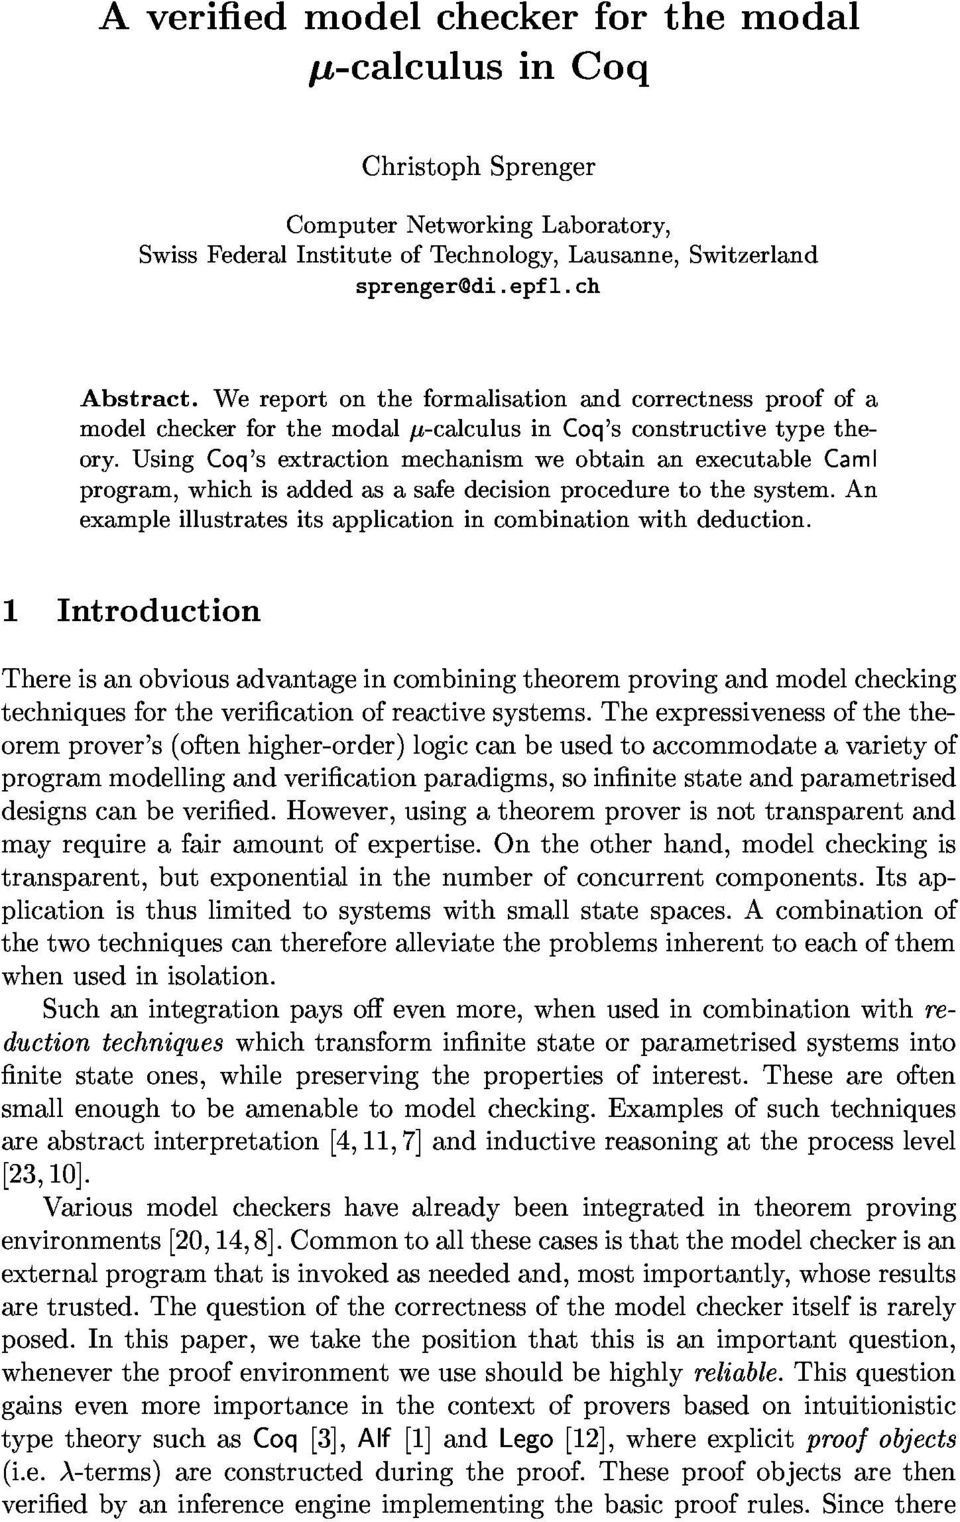 usingcoq'sextractionmechanismweobtainanexecutablecaml modelcheckerforthemodal-calculusincoq'sconstructivetypethe- 1Introduction exampleillustratesitsapplicationincombinationwithdeduction.